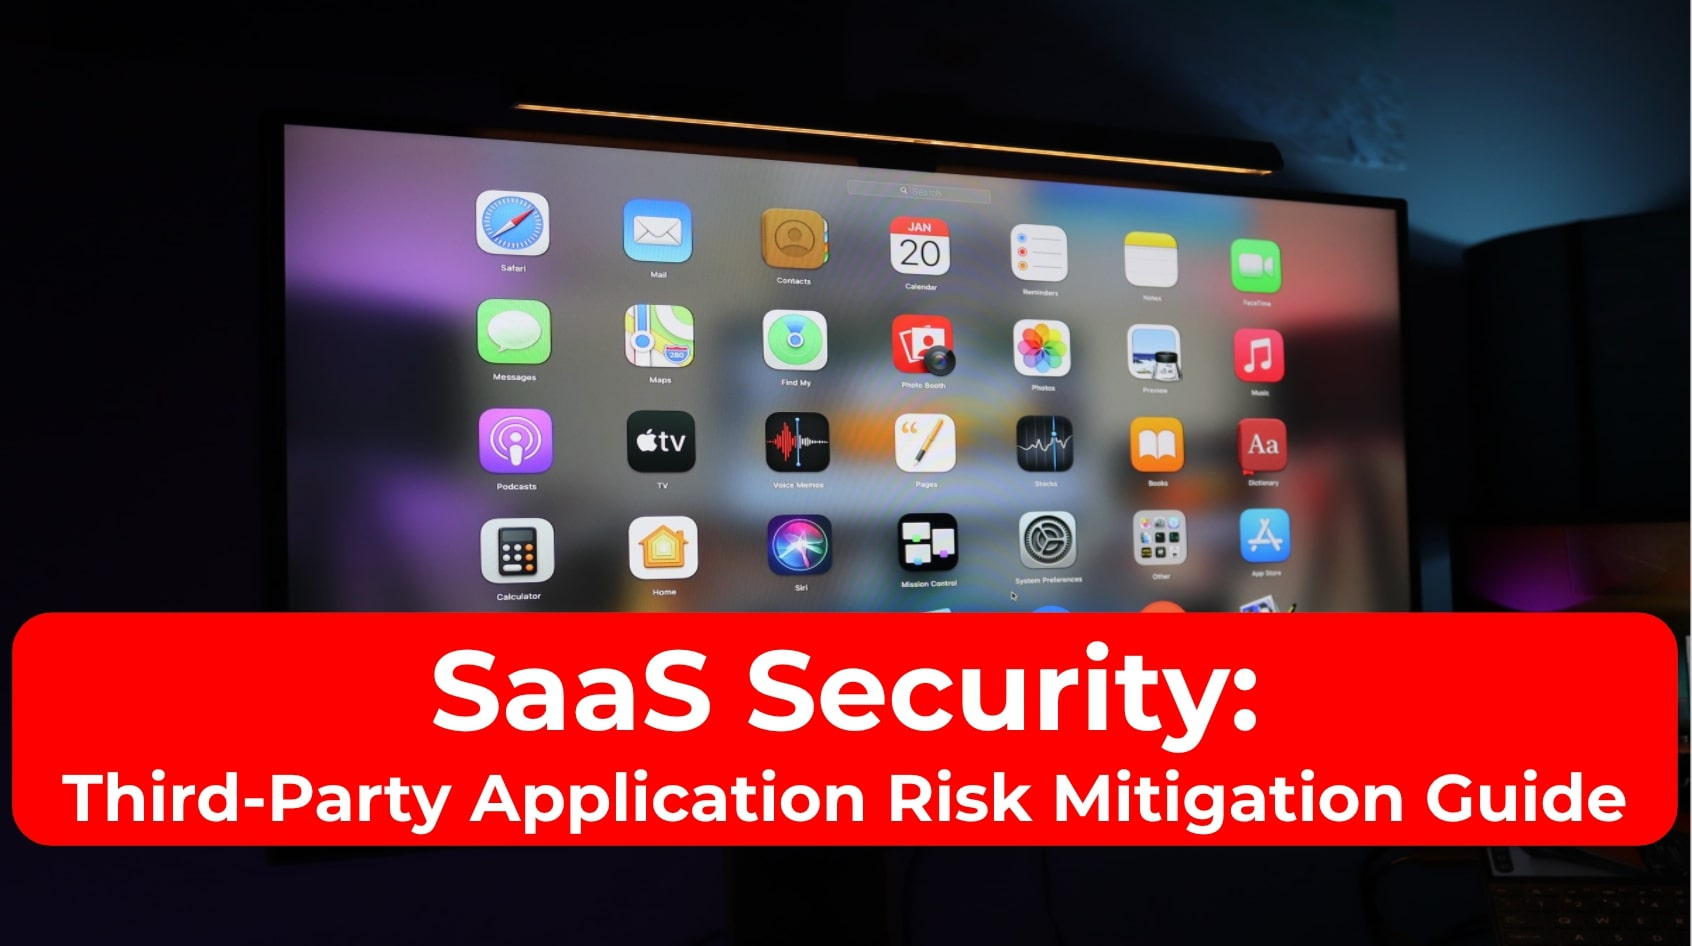 SaaS Security: Third-Party Application Risk Mitigation Guide